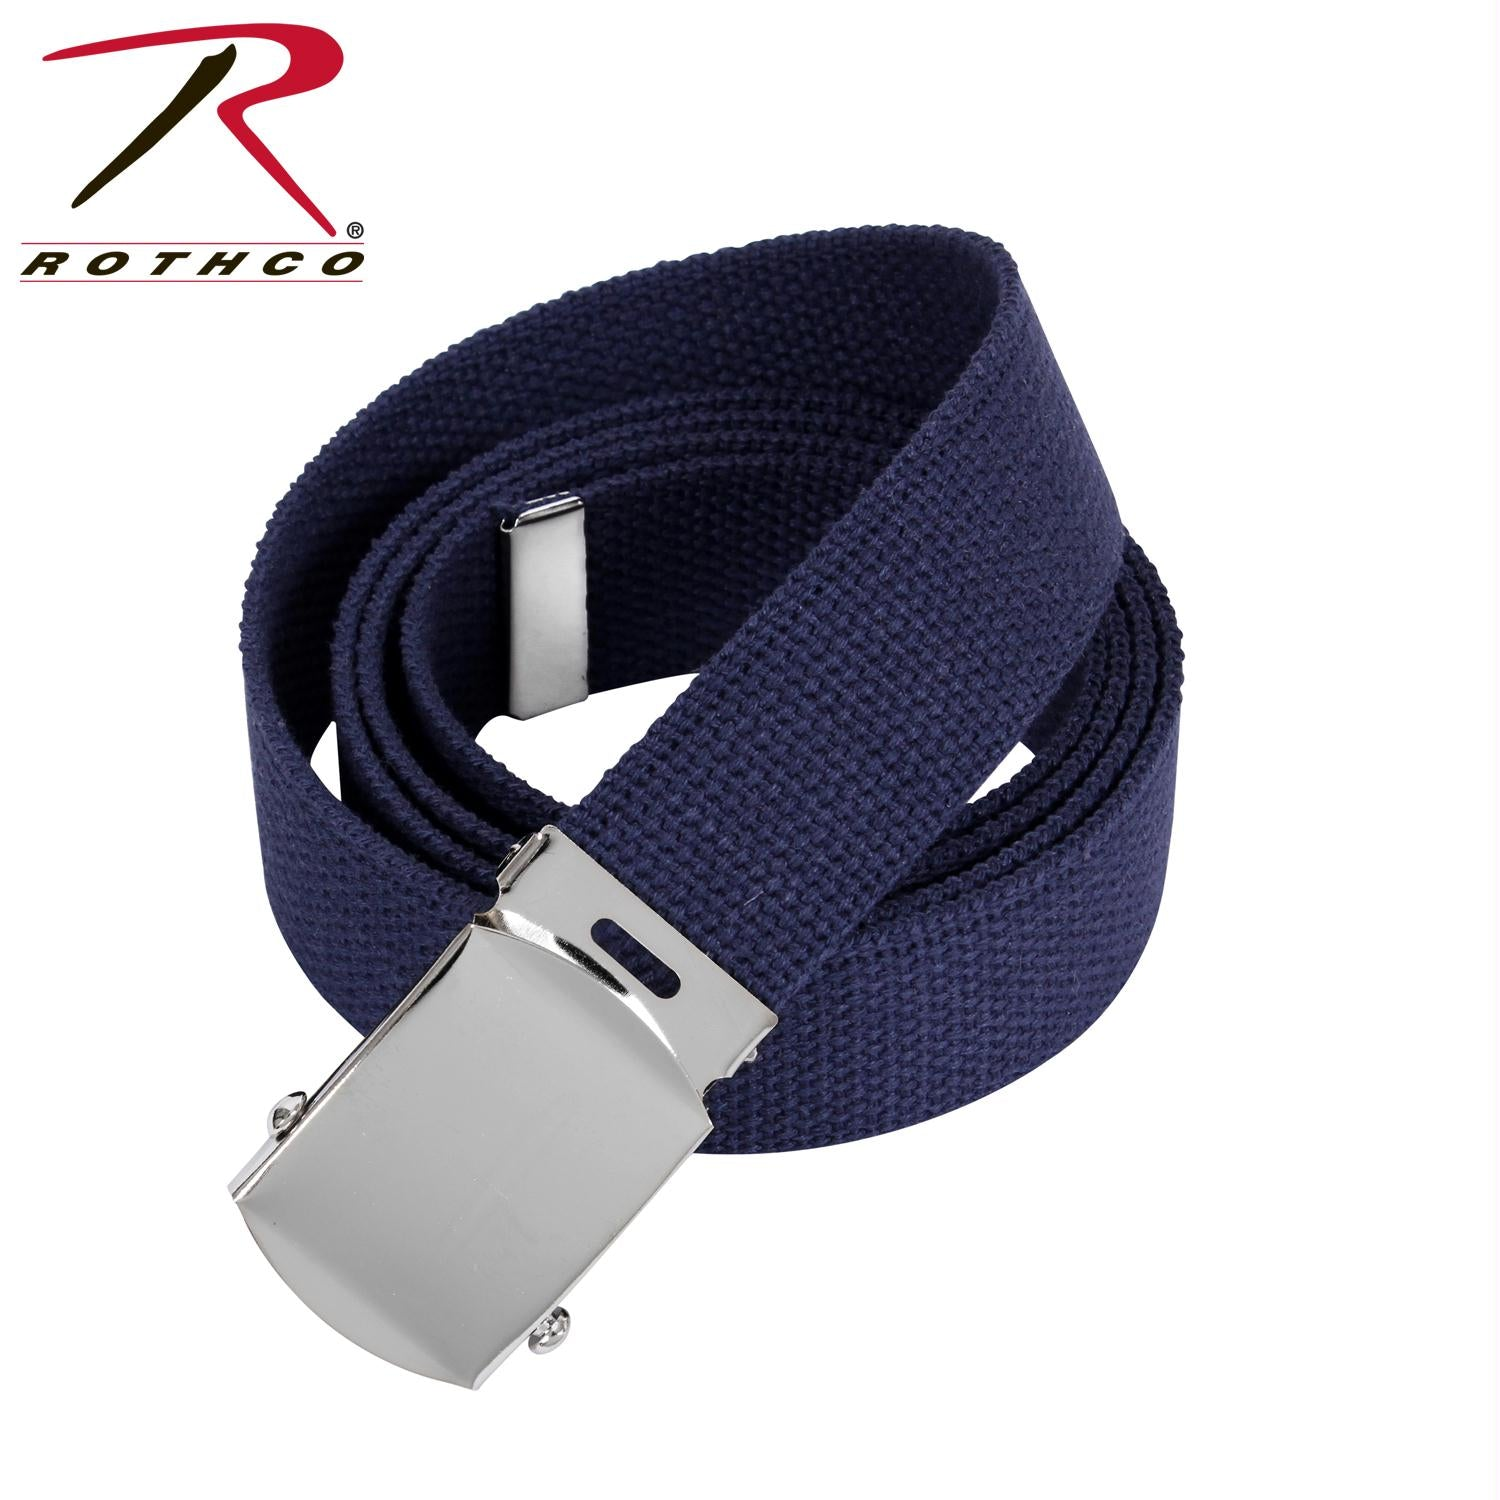 Rothco 64 Inch Military Color Web Belts - Chrome / Navy Blue